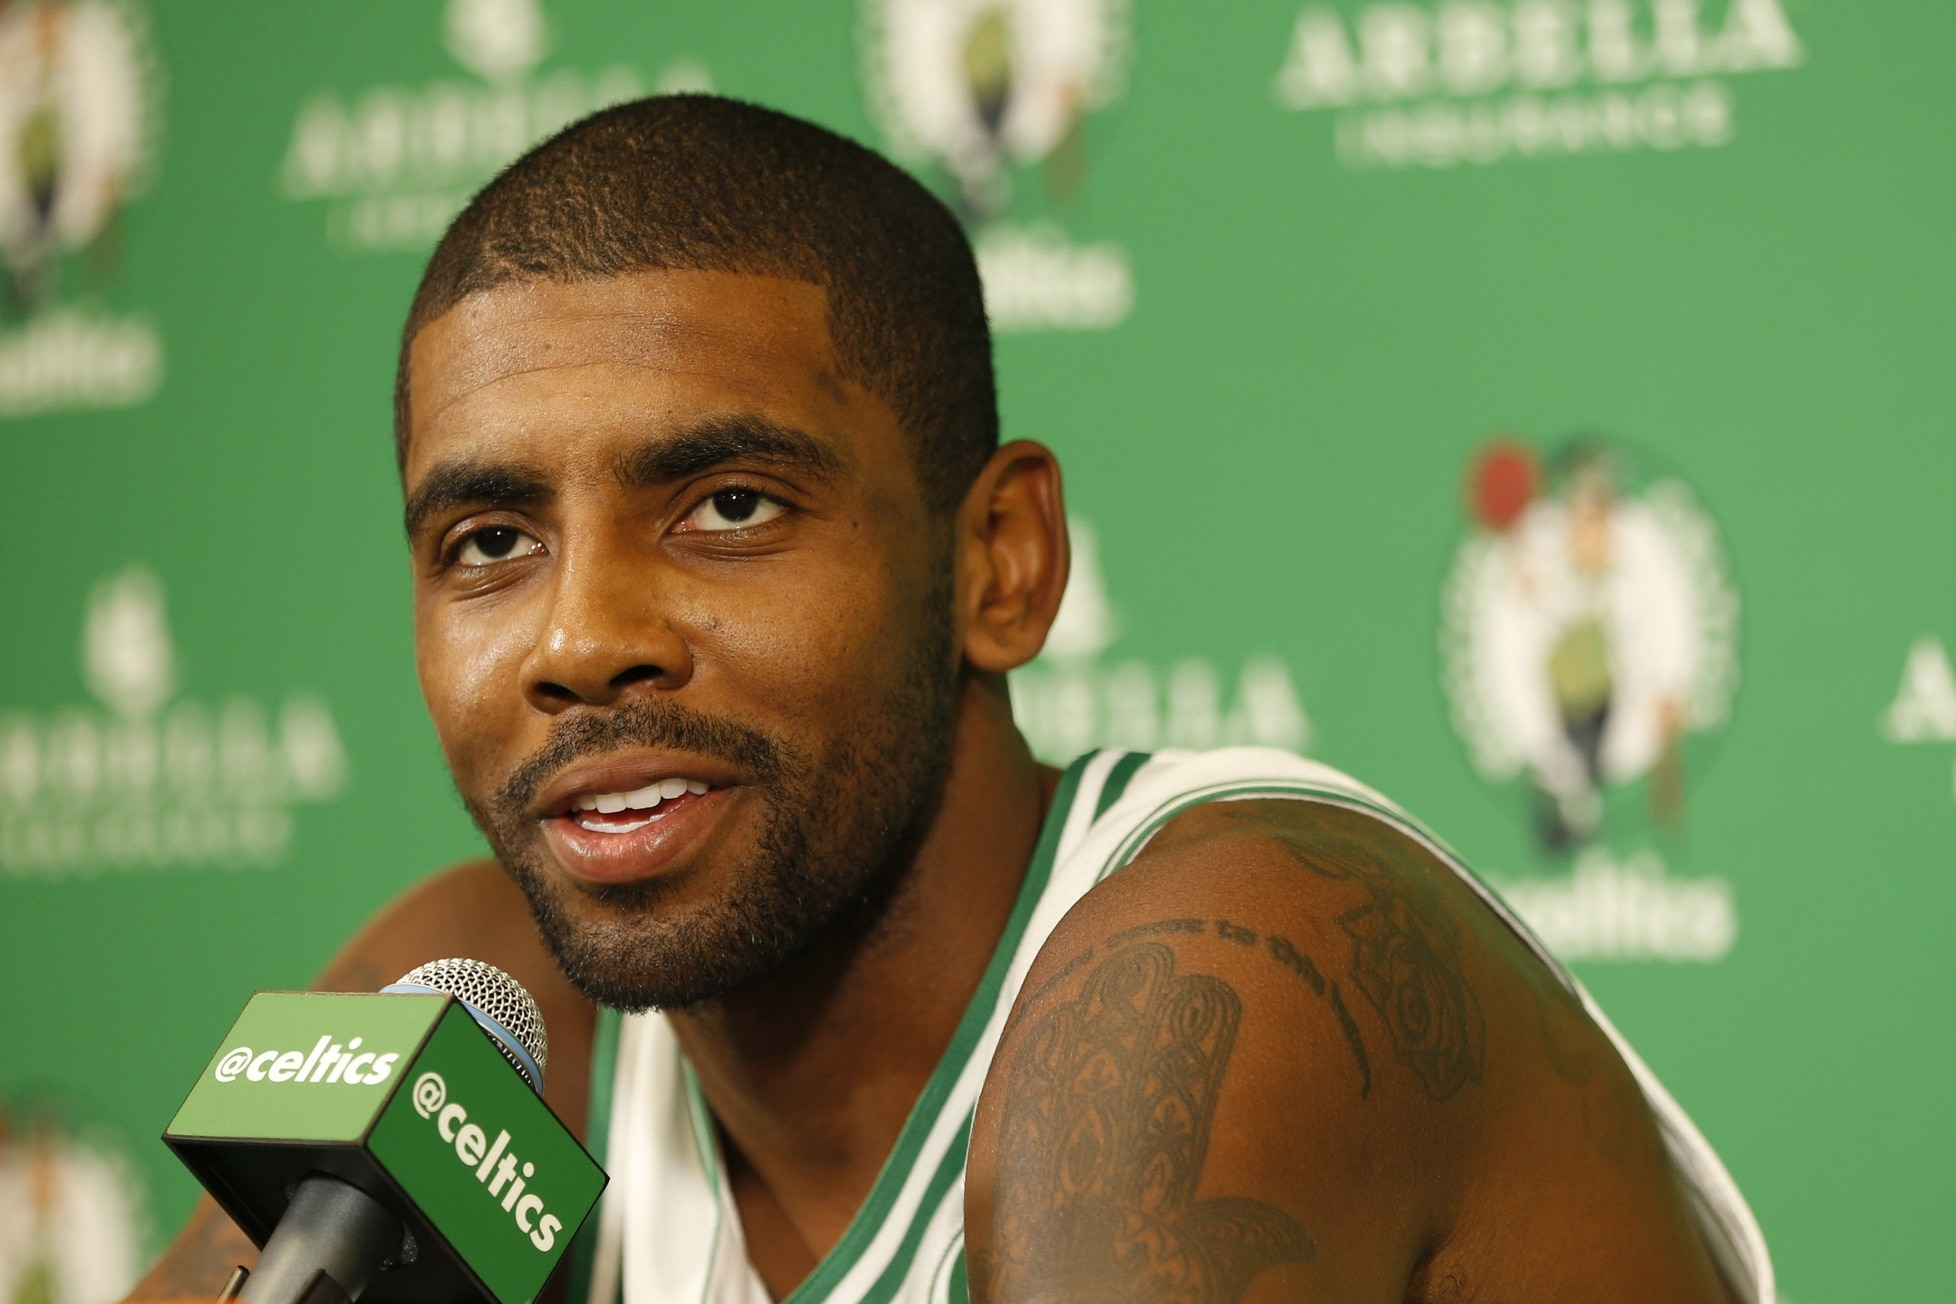 23ac29a83be Kyrie finally got his wish. After existing behind LeBron James  shadow in  Cleveland over the past three seasons